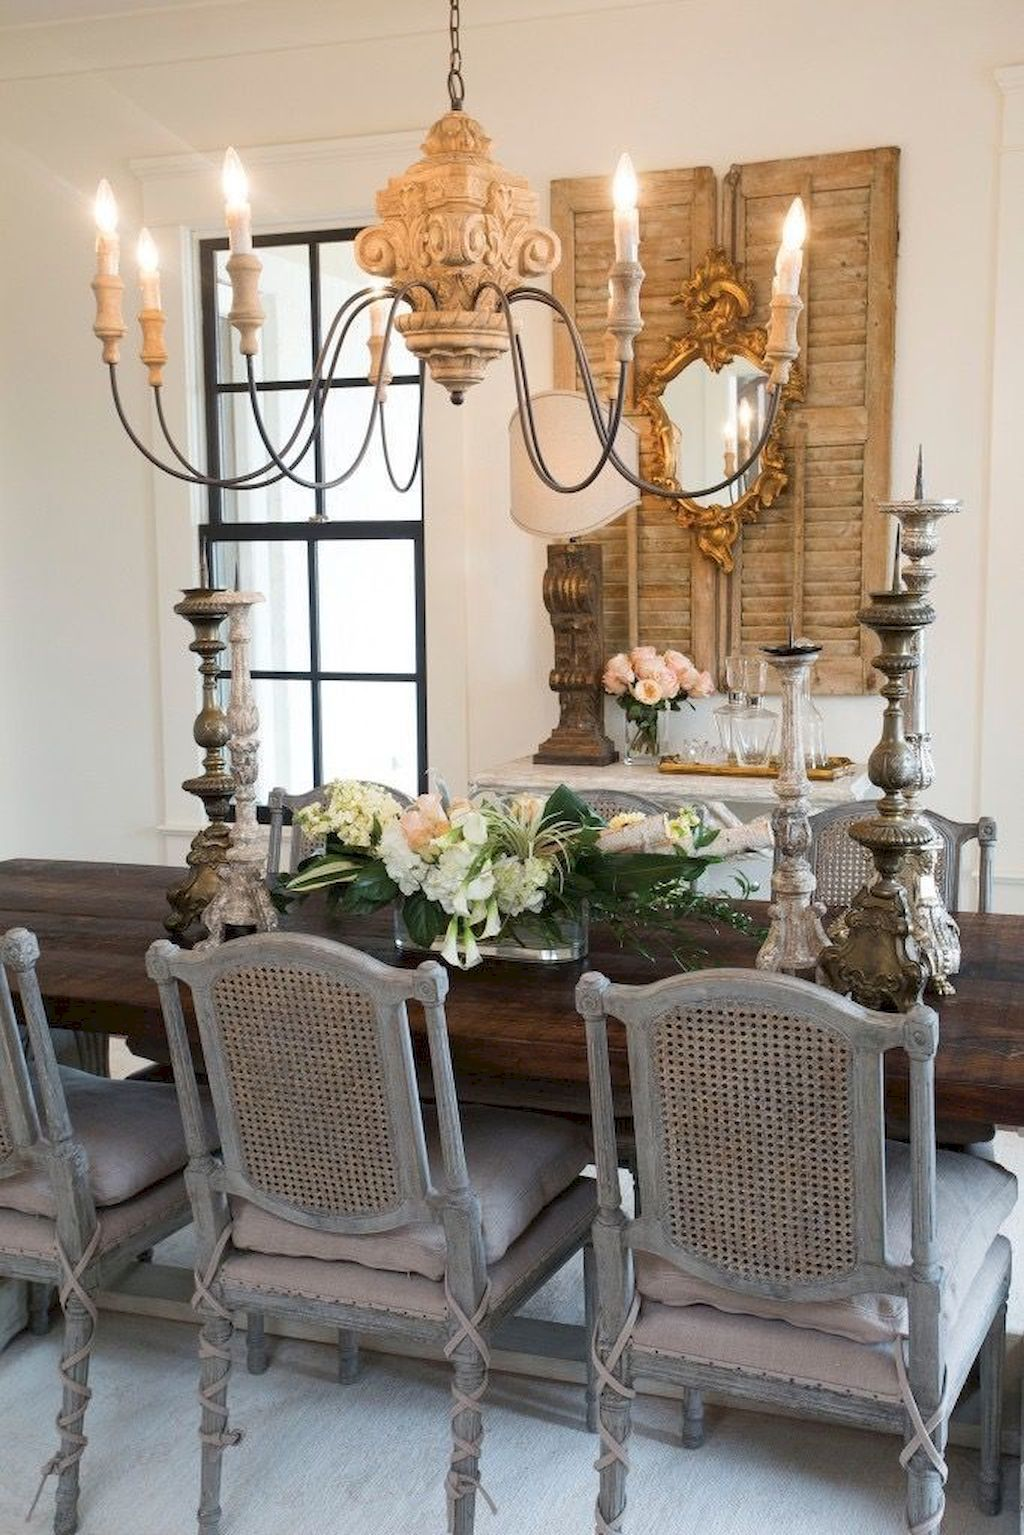 Adorable 55 Modern French Country Dining Room Table Decor Ideas Awesome French Country Dining Room Decorating Ideas Design Inspiration